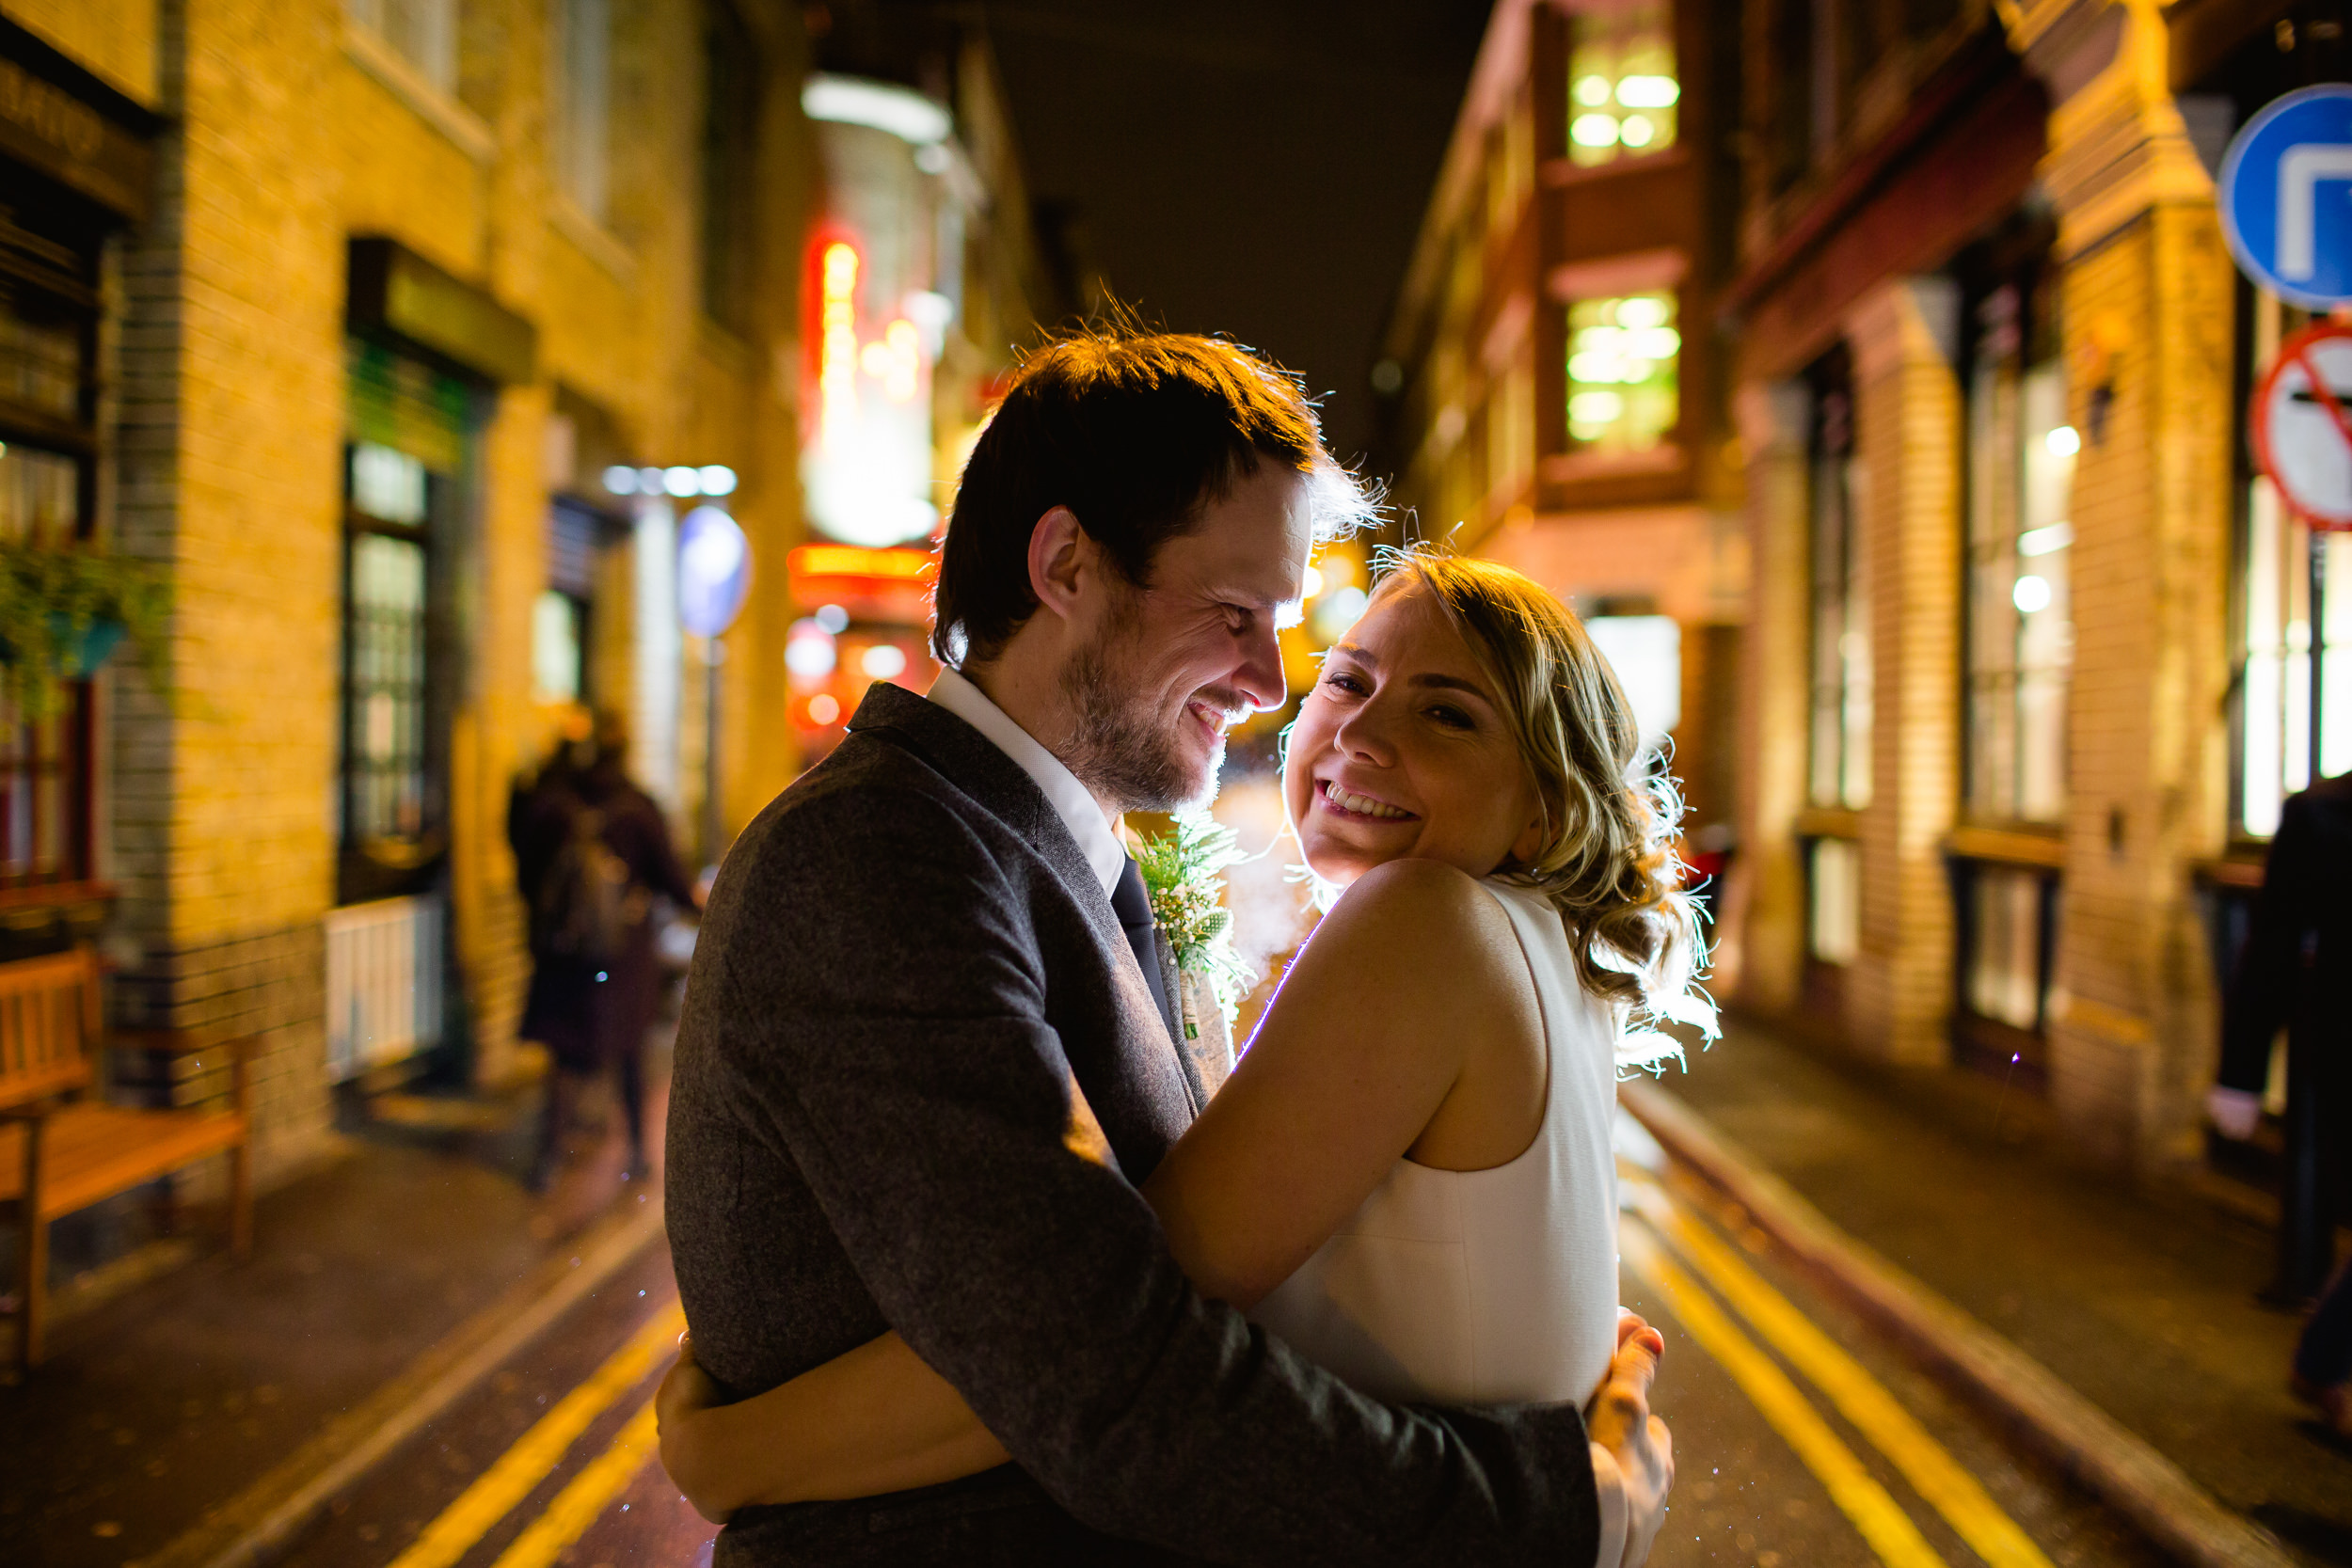 Romantic pictures at Tramshed London - London wedding pictures - Tramshed wedding